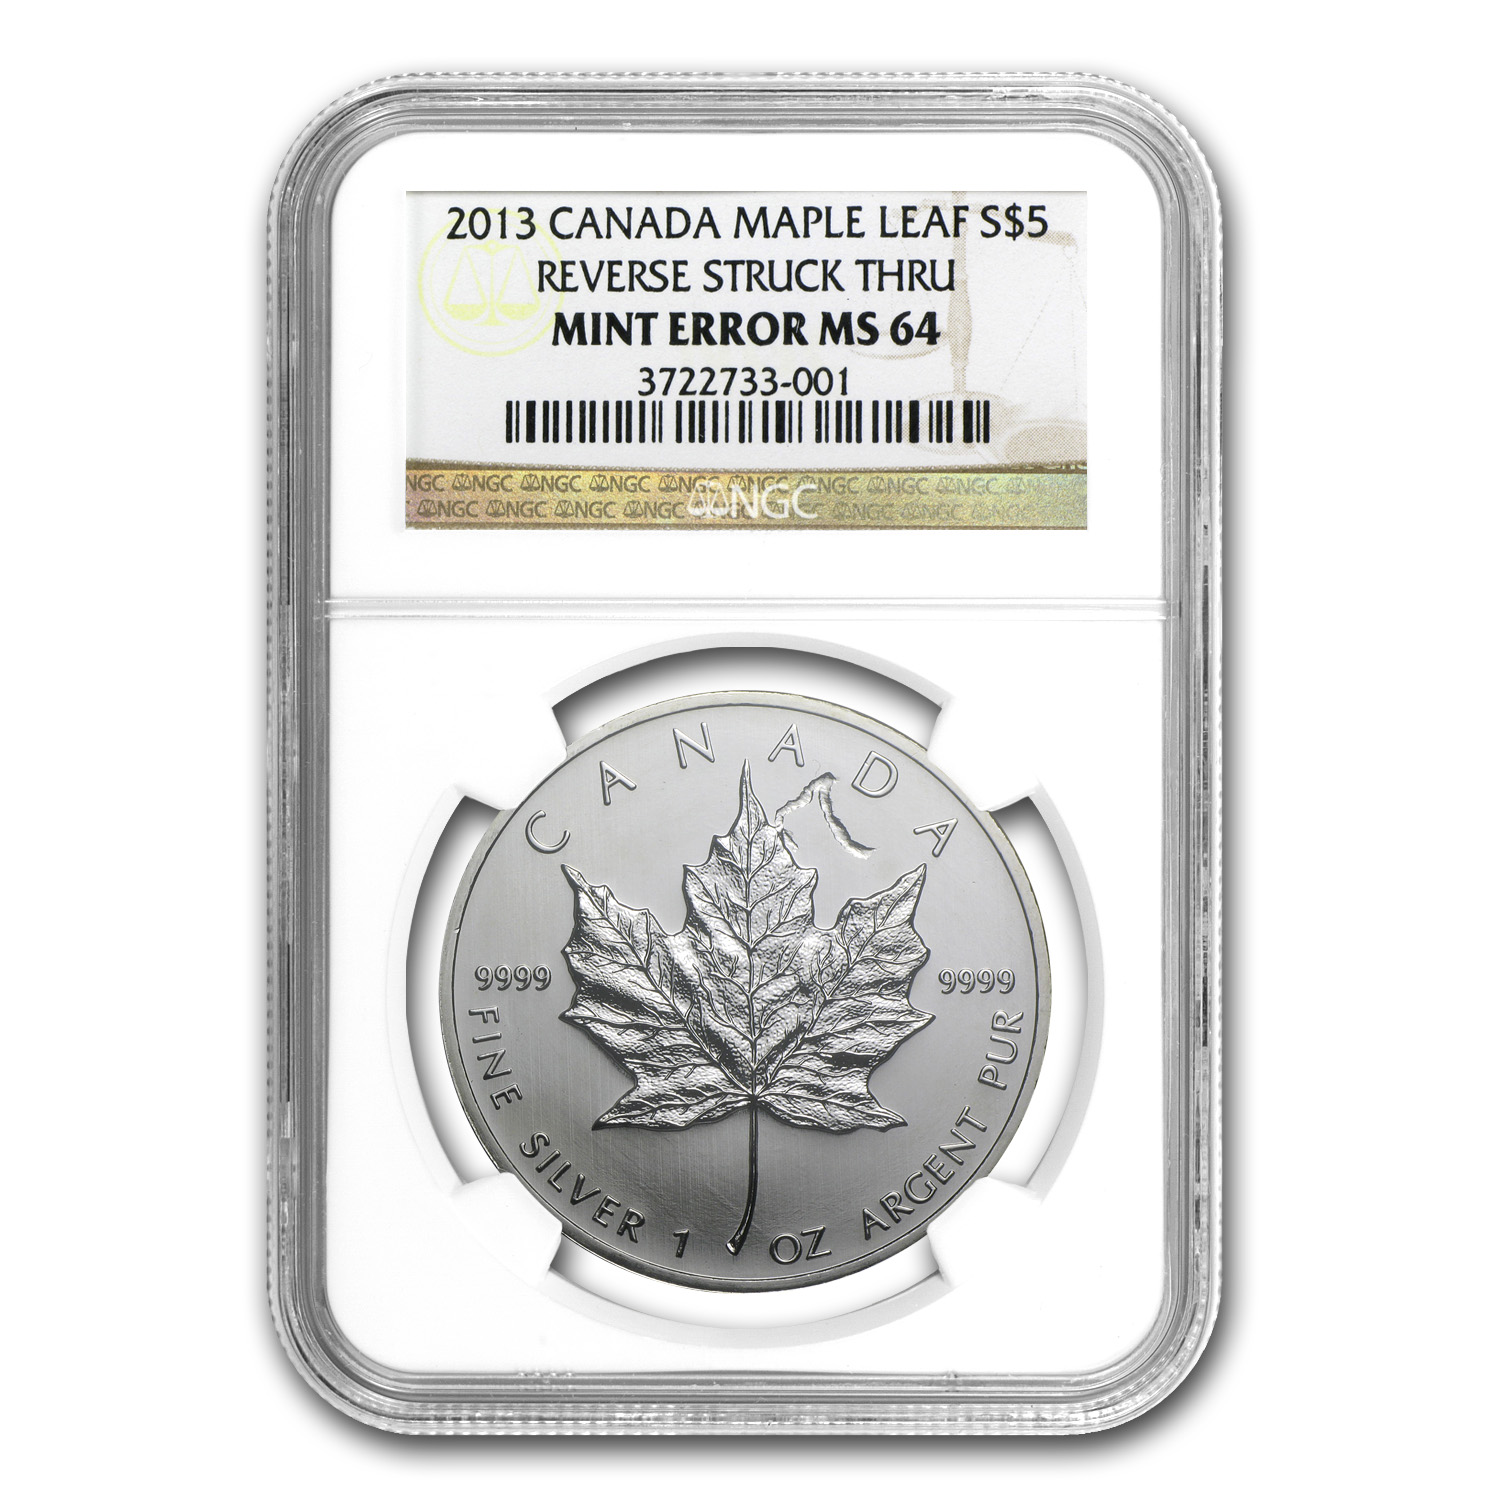 2013 1 oz Silver Can. Maple Leaf Rev. Struck Mint Error MS-64 NGC